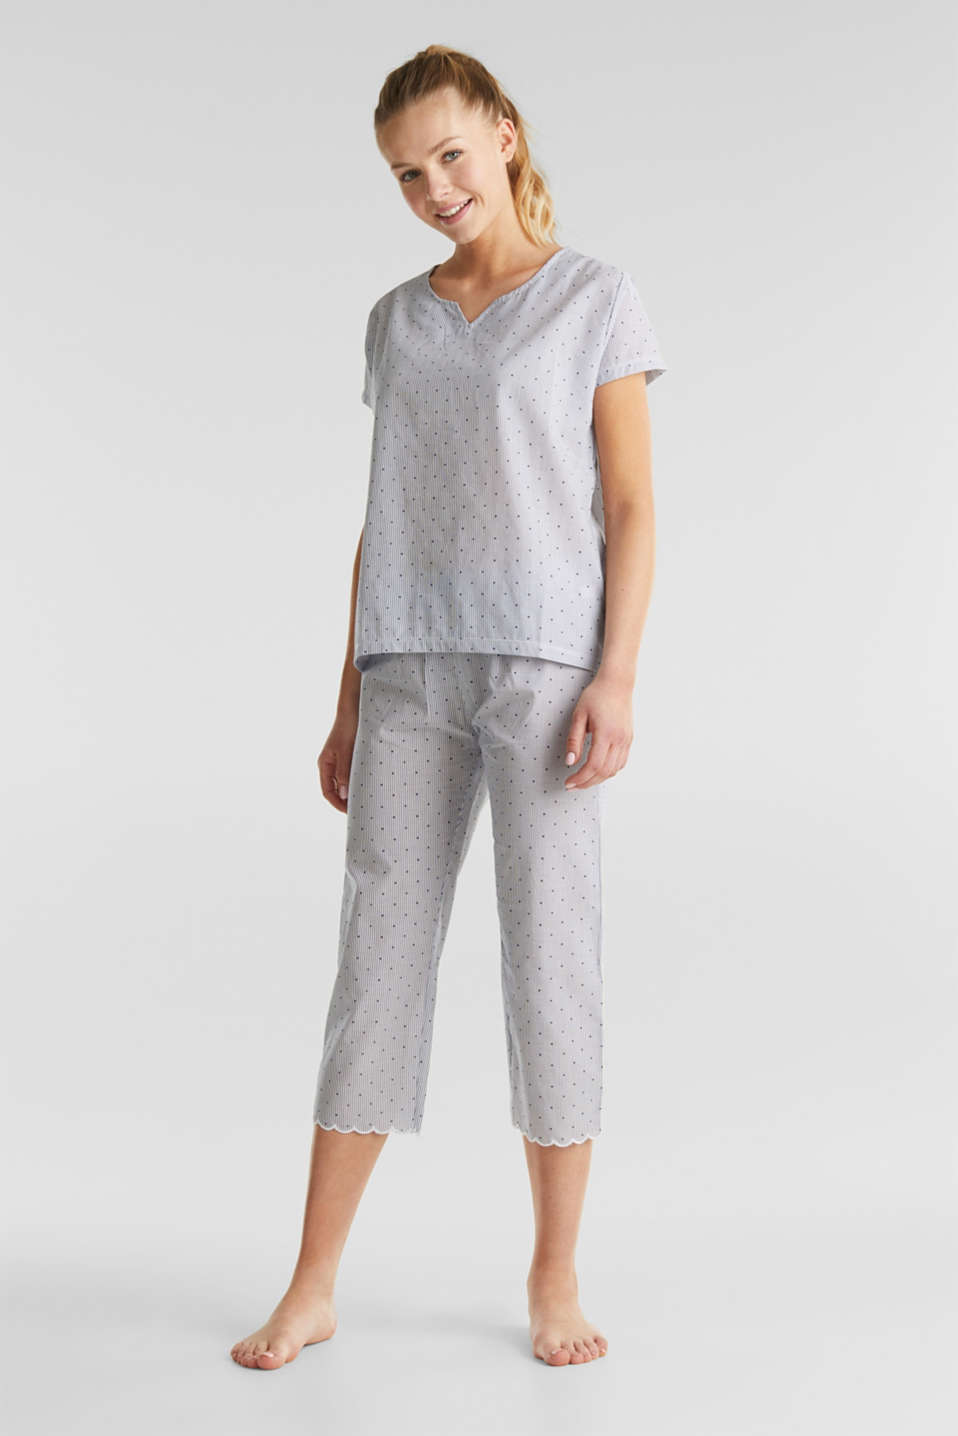 Esprit - Woven pyjamas with a mixed pattern, 100% cotton